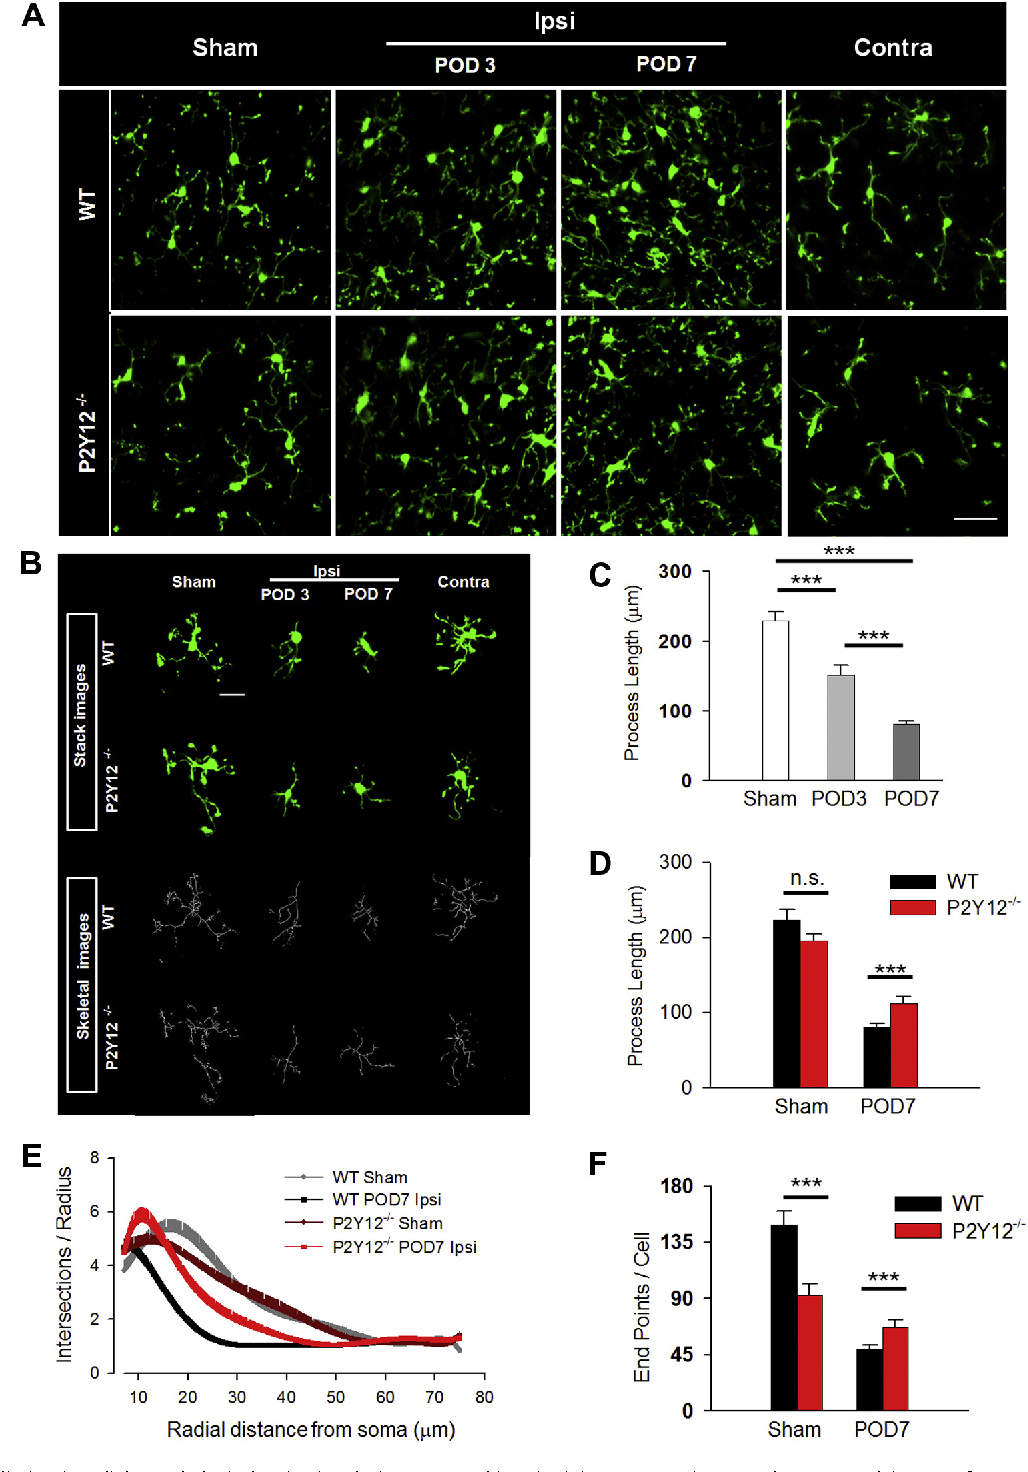 Fig. 3. P2Y12 receptors limit microglial morphological activation during neuropathic pain. (A) Representative two-photon z-stack images of GFP-expressing microglia in the spinal cord dorsal horn of sham (left) ipsilateral (left and right center) and contralateral (right) dorsal horn from WT (top) and P2Y12 / (bottom) tissue slices. Scale bar is 200 lm. (B) Representative raw (green) and transformed skeletal (grey) images from sham (left) ipsilateral (left and right center) and contralateral (right) dorsal horn from WT (top) and P2Y12 / (bottom) tissues. Scale bar is 20 lm. (C) Quantification of microglial process length in WT sham as well POD 3 and 7 following SNT surgery showing progressive shortening of process lengths. n = 6–9 slices per group (from 3 mice). Data are shown as mean ± SEM. ***P < 0.001. (D) Quantification of microglial process length in WT and P2Y12 / microglial at POD 7 following SNT surgery in WT and P2Y12 / tissues. n = 8–11 slices per group (form 4 mice). Data are shown as mean ± SEM. ***P < 0.001. (E and F) Sholl (E) and endpoint voxel (F) analysis of microglia fromWT and P2Y12 / tissues in the sham and at POD 7 following SNT surgery. n = 14–25 cells per group from 5 to 7 mice for Sholl analysis and n = 8–11 slices per group from 4 mice for endpoint voxel analysis. Data are shown as mean ± SEM. n.s., no significance. *P < 0.05; ***P < 0.001.